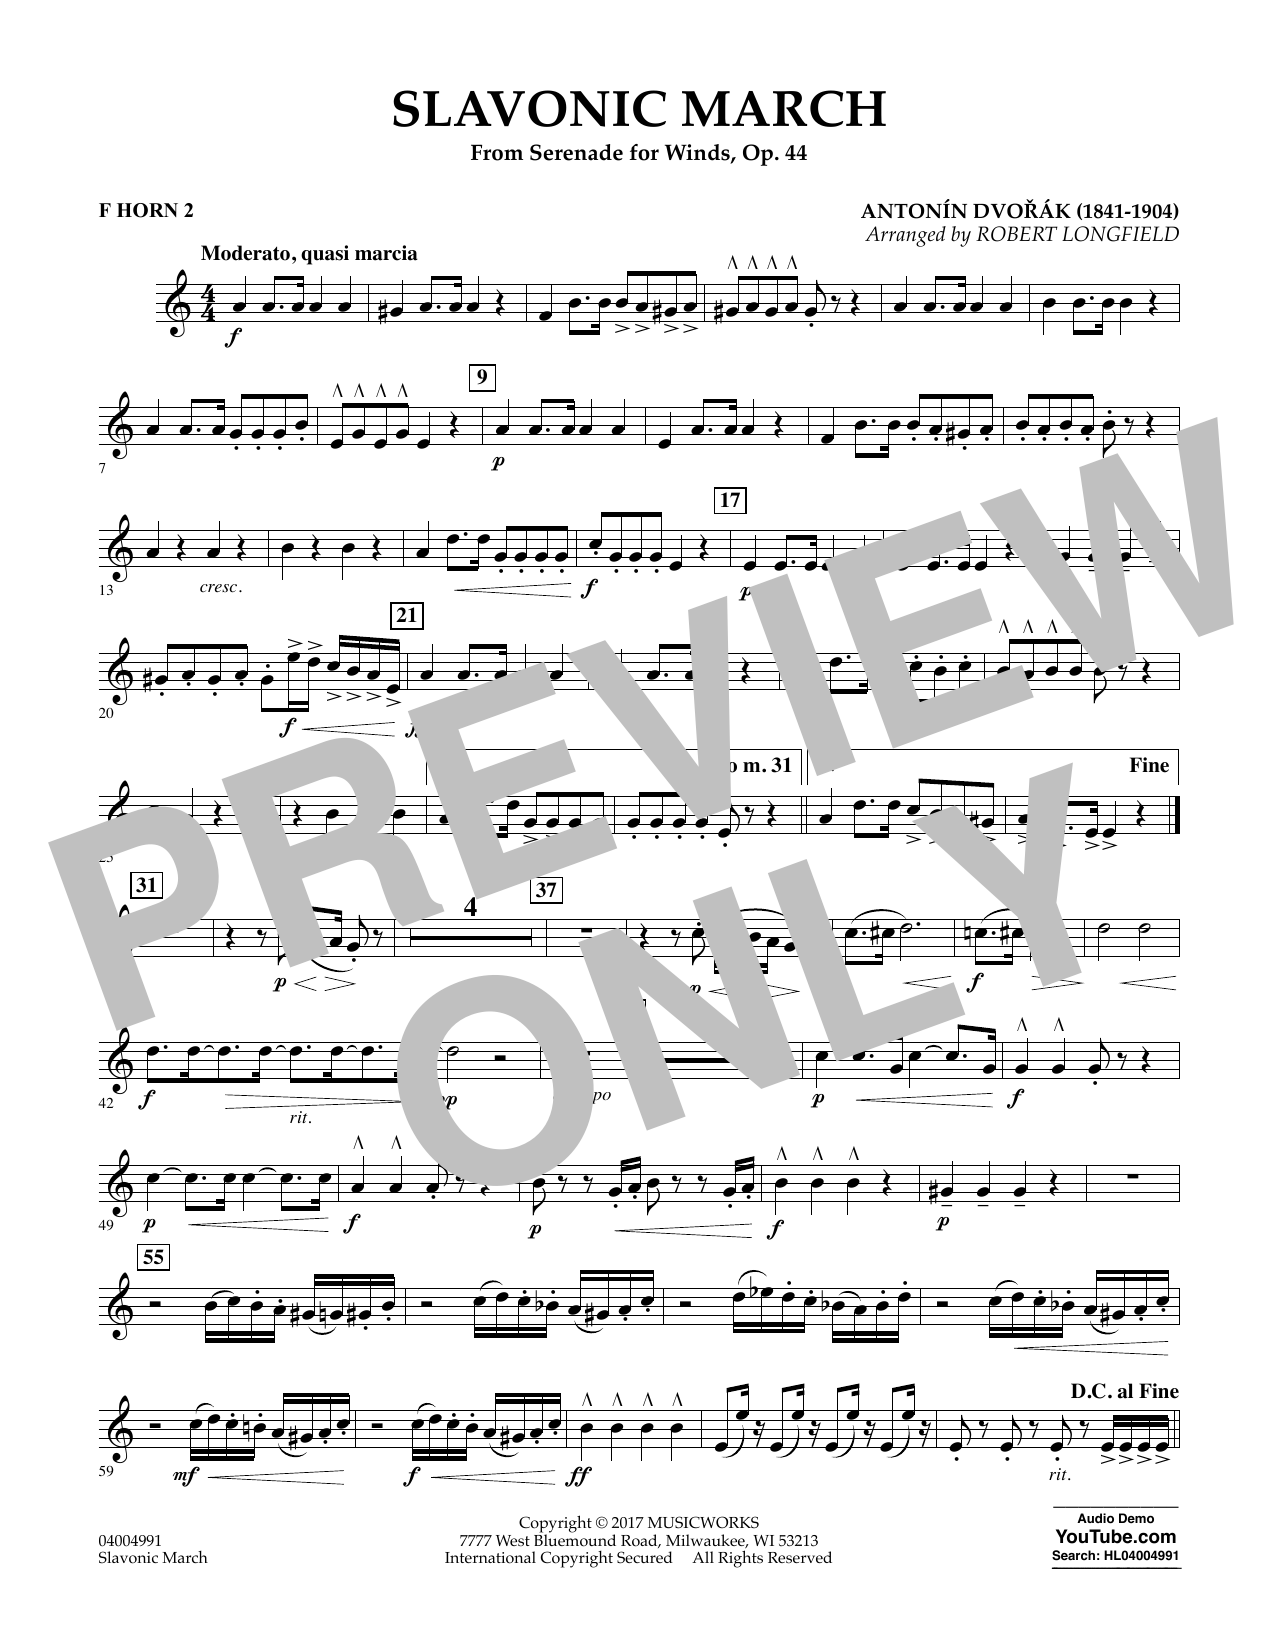 Slavonic March (from Serenade for Winds, Op. 44) - F Horn 2 Sheet Music